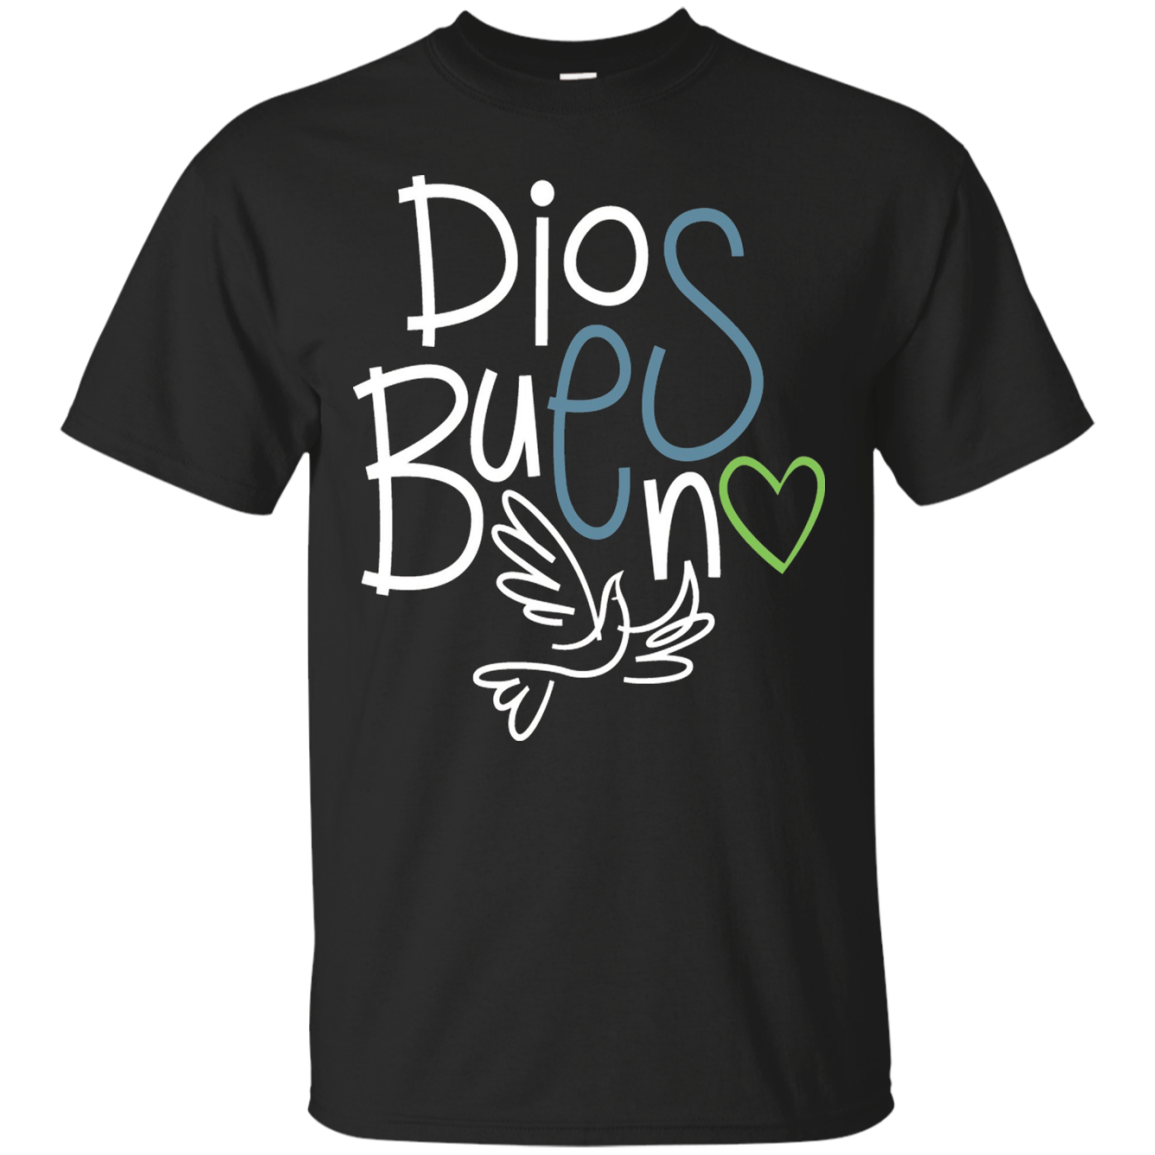 God is Good T Shirt in Spanish Dios es Bueno